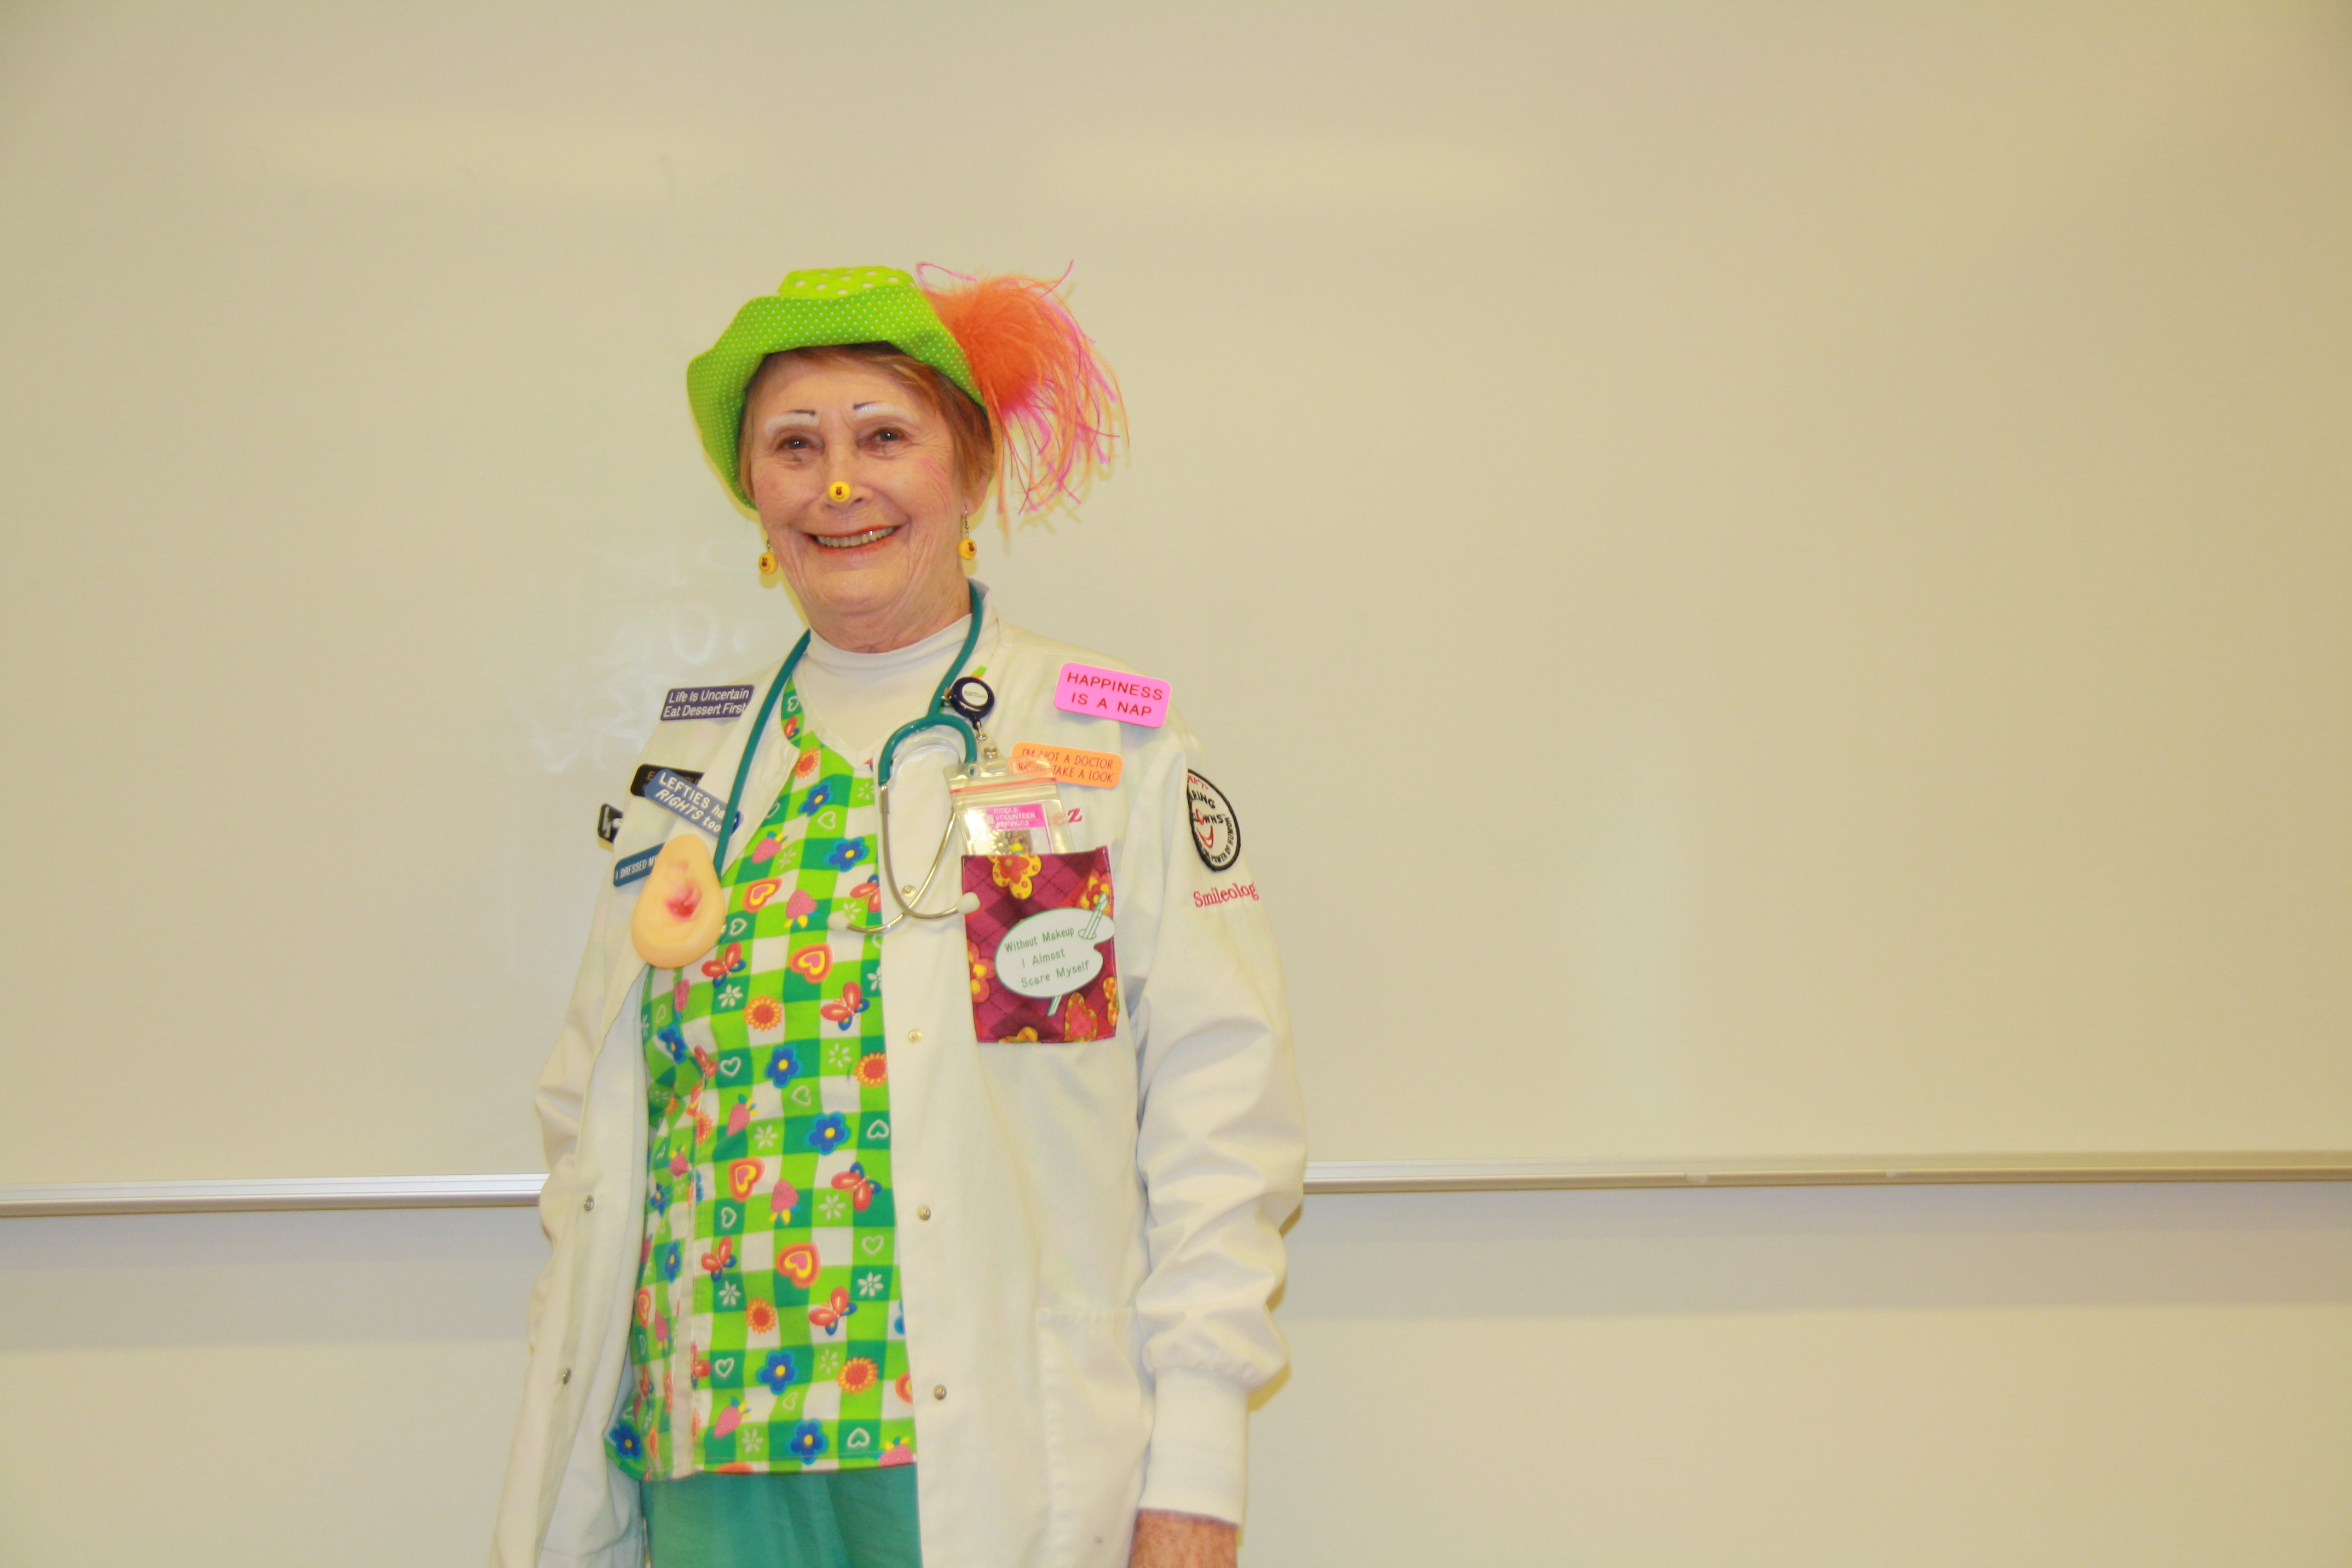 DR Clown with green hat.